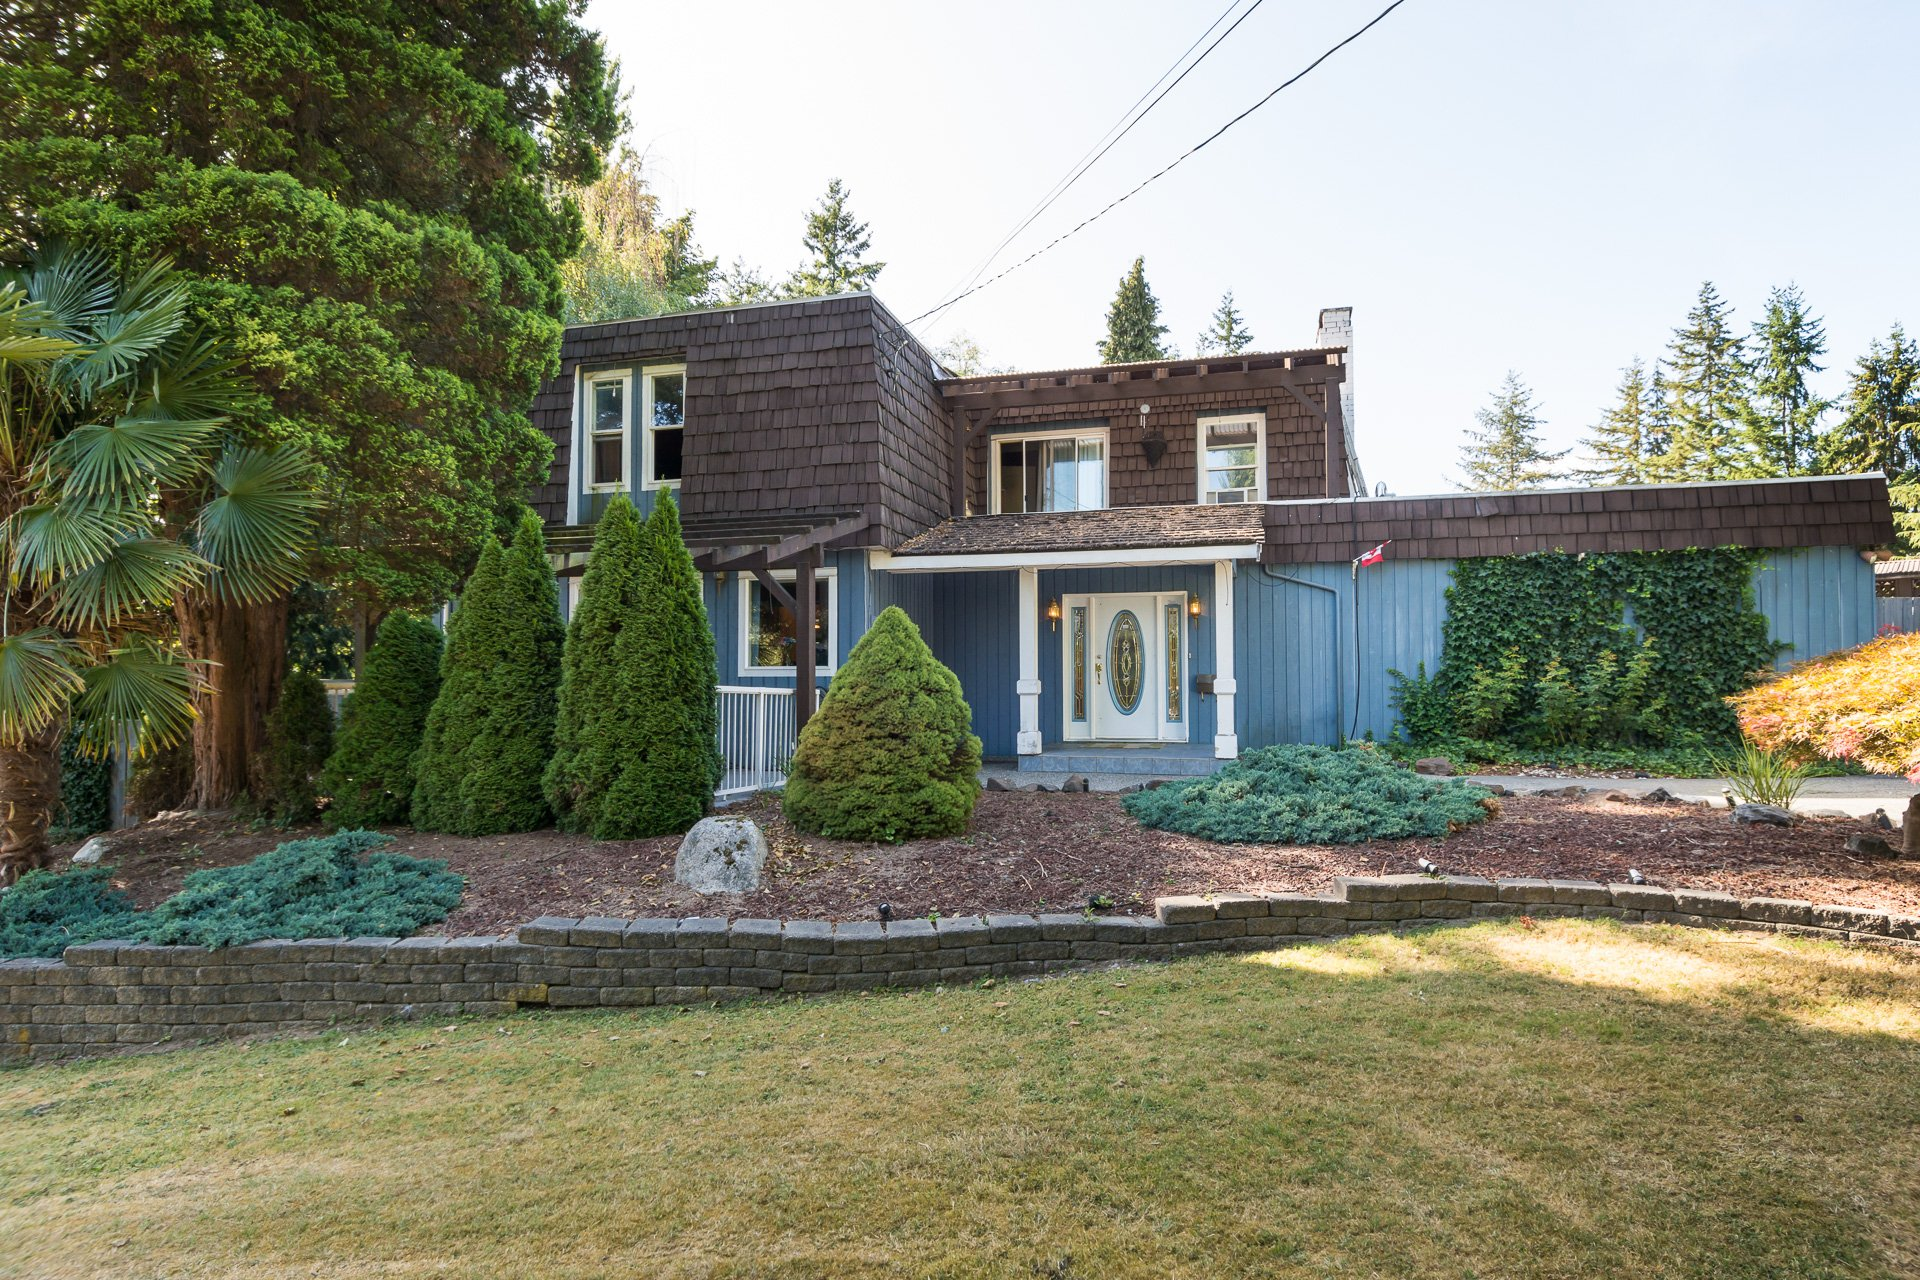 West Panorama Ridge home on 1/2 Acre is now available